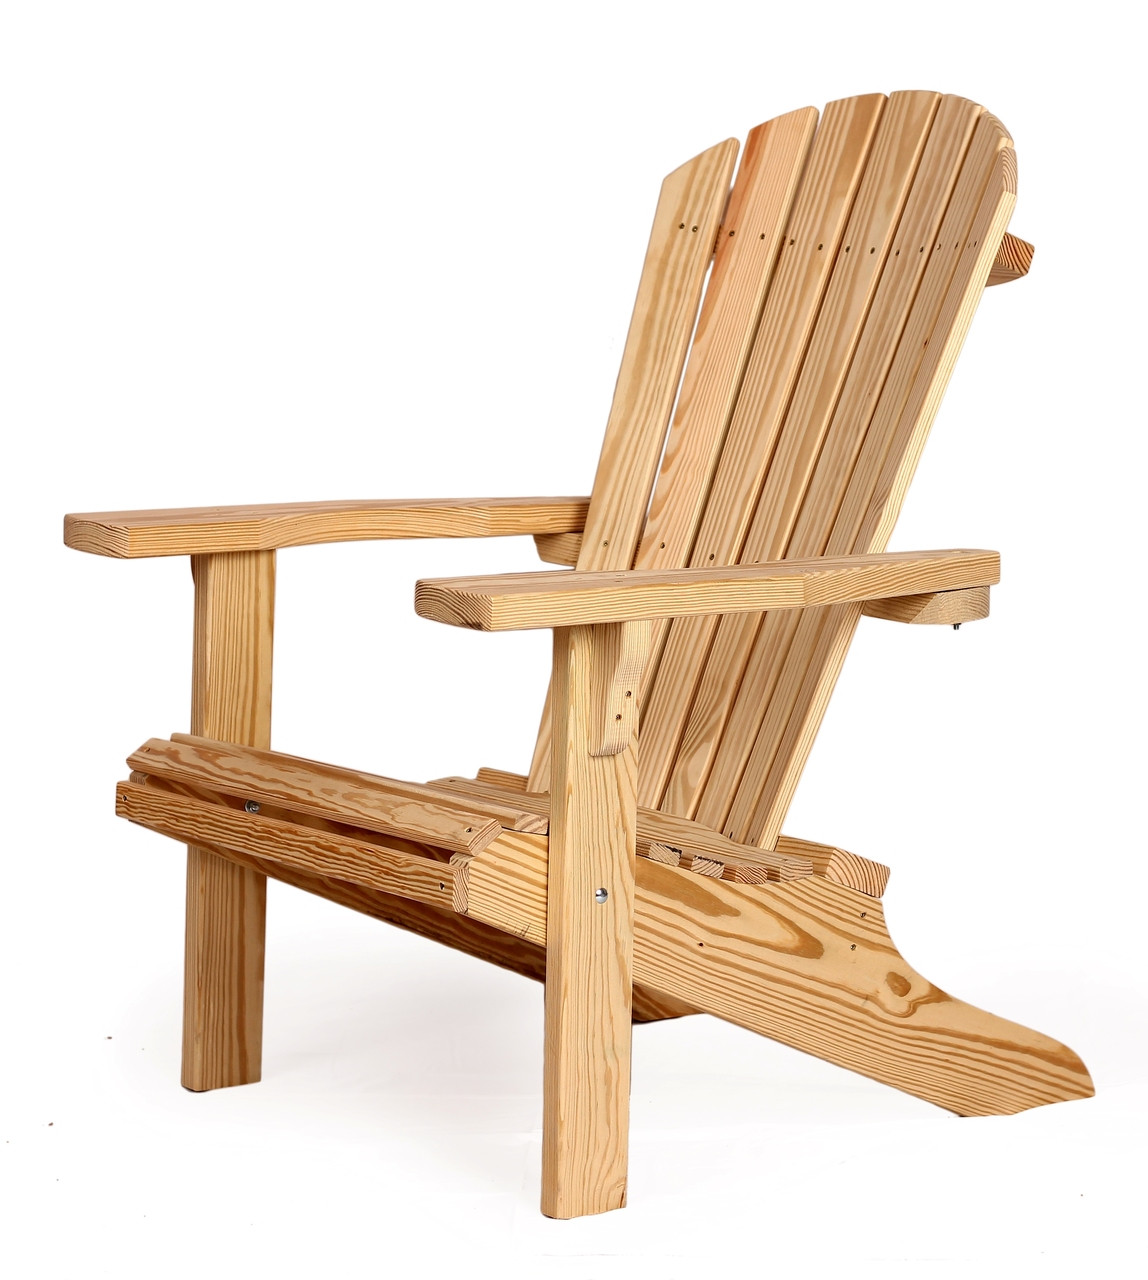 Treated Pine Adirondack Chair Southern Outdoor Furniture